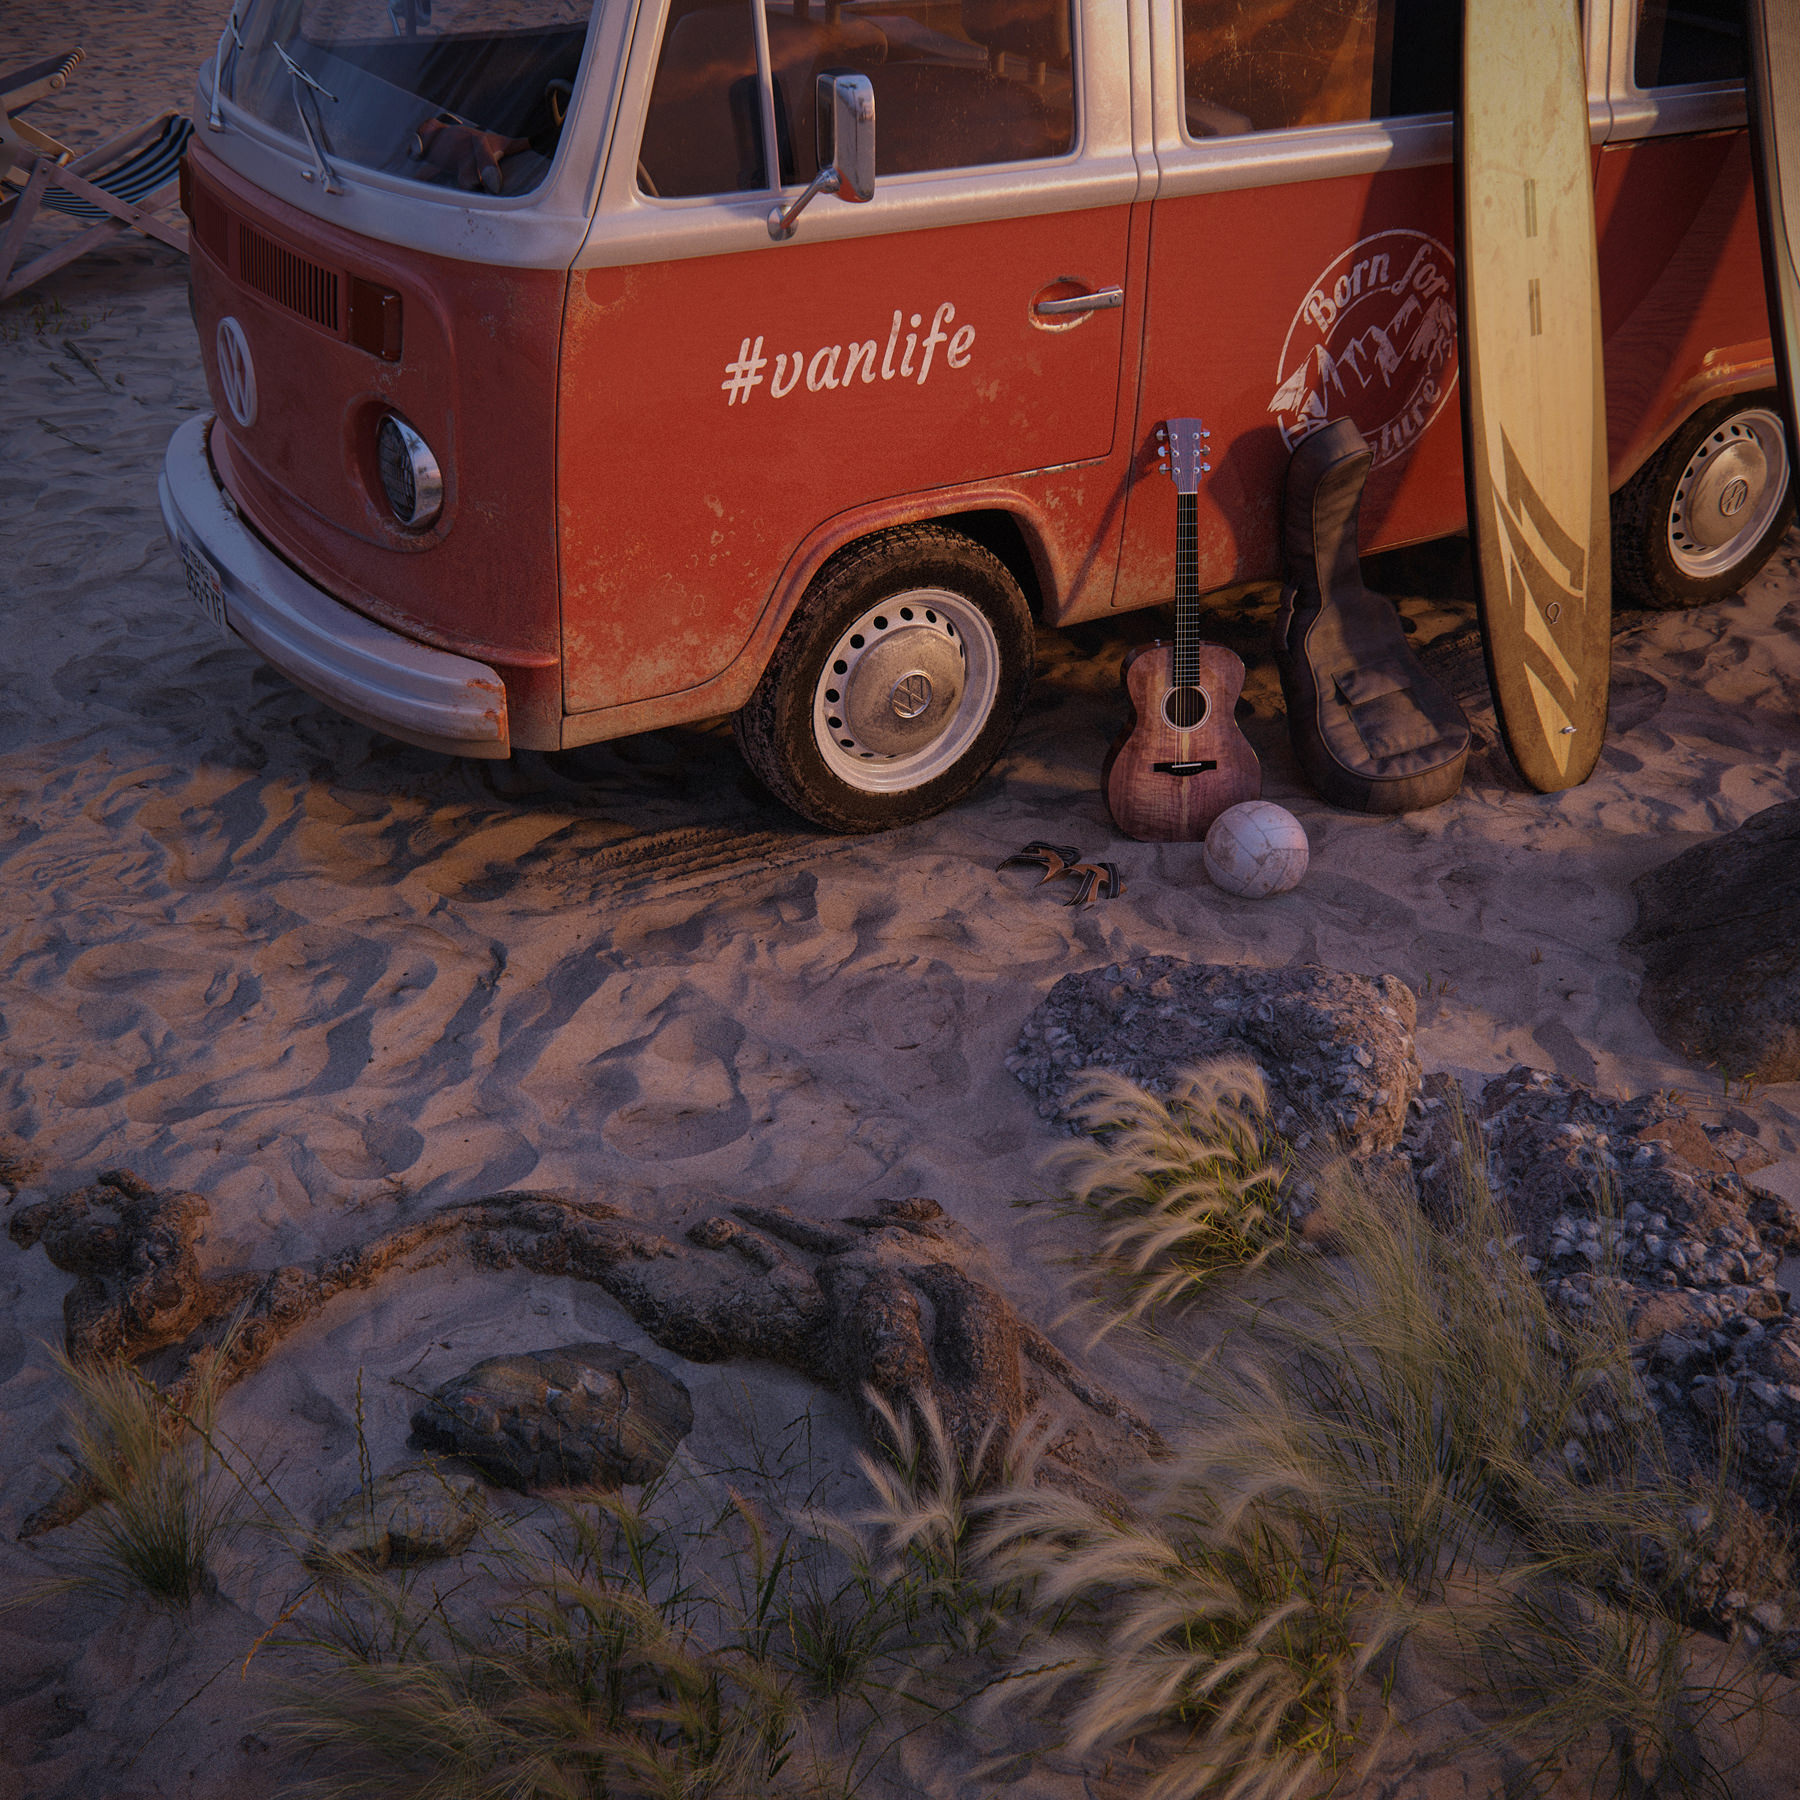 A 3D rendered close-up of a red and white Volkswagen camp van parked on the sand beach with surfboards and an acoustic guitar leaning on its left wing